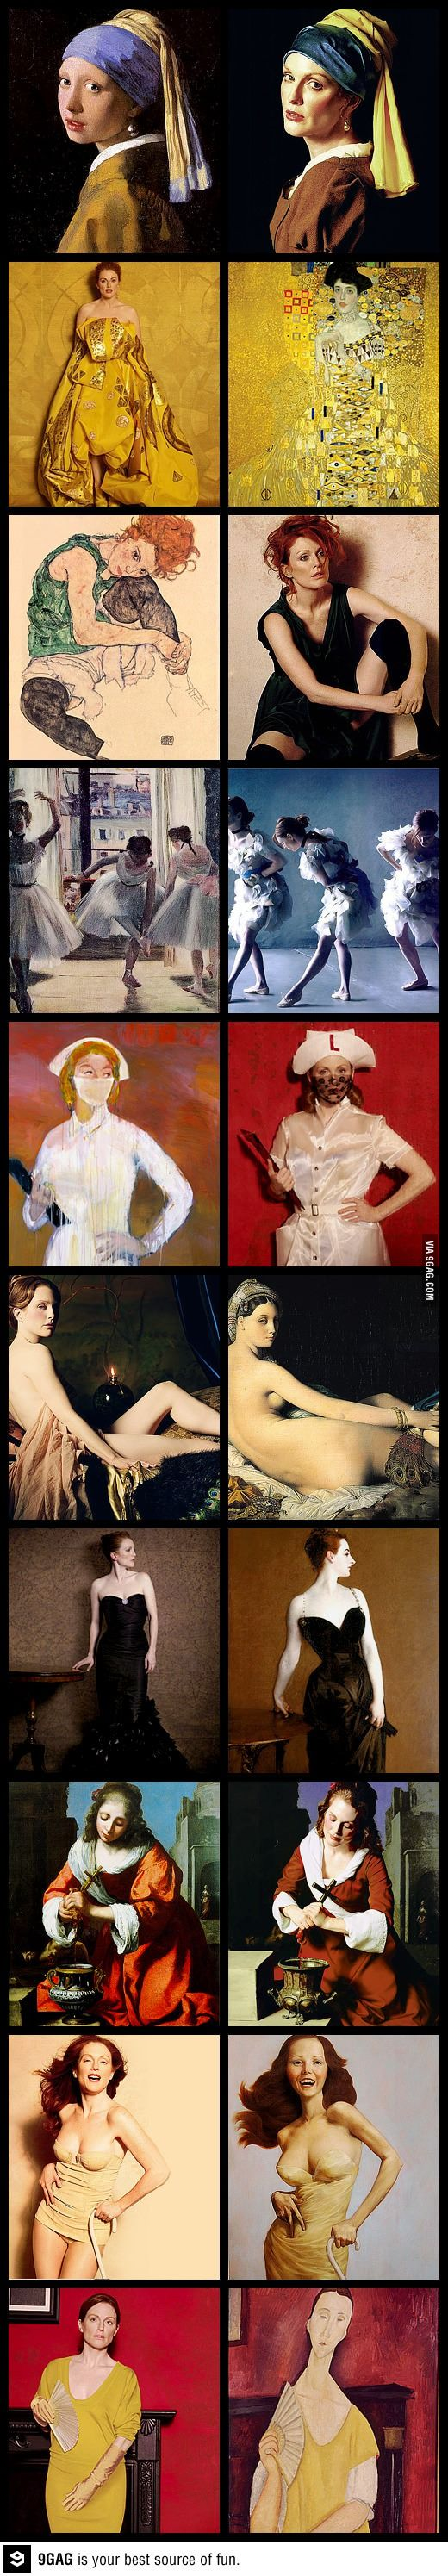 Julianne Moore recreating famous works of art